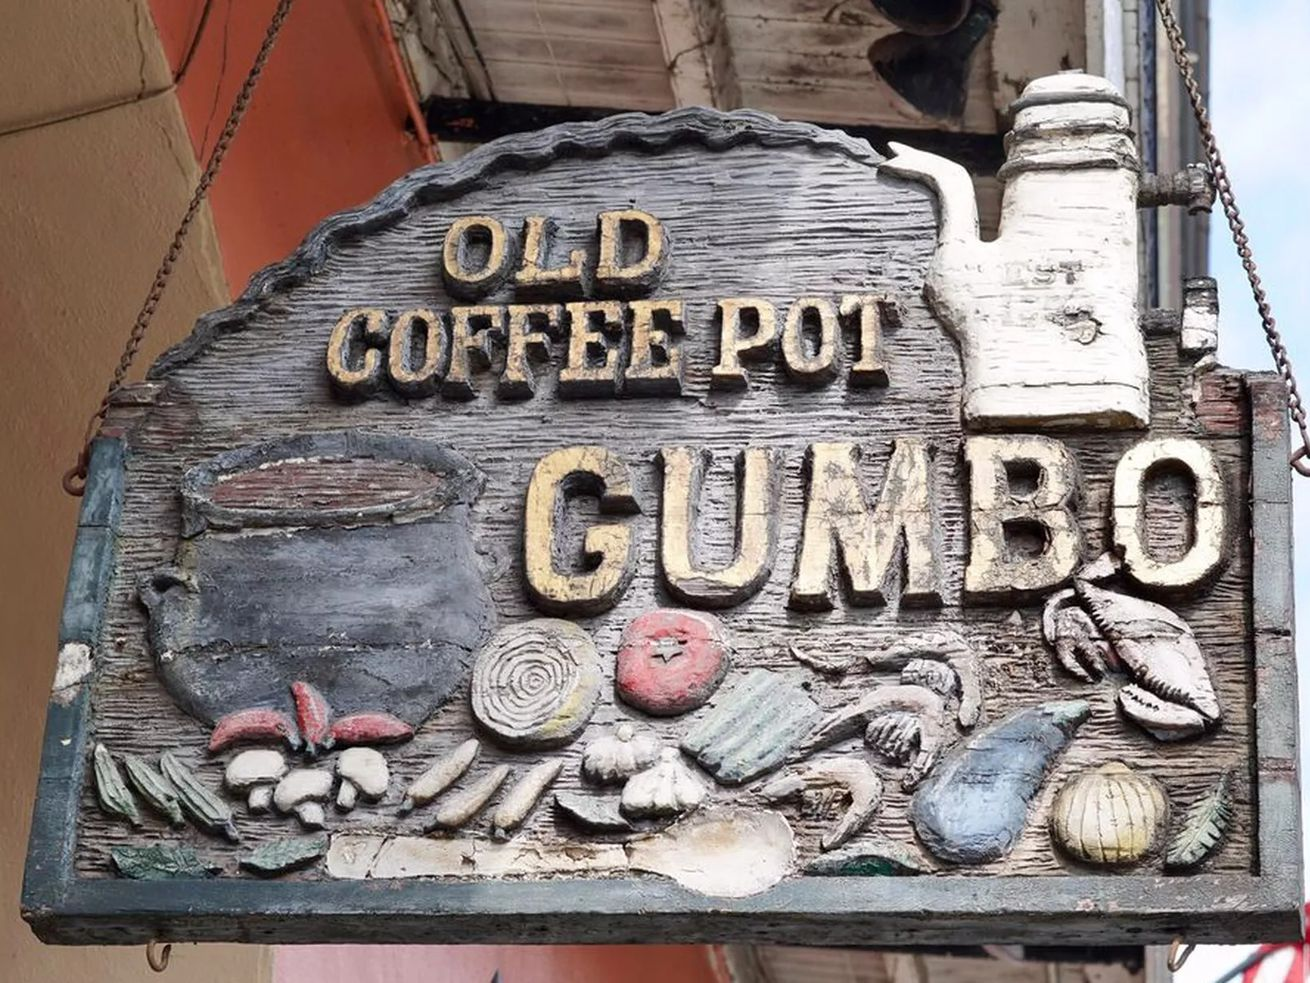 The Old Coffee Pot closed after 125 years in February